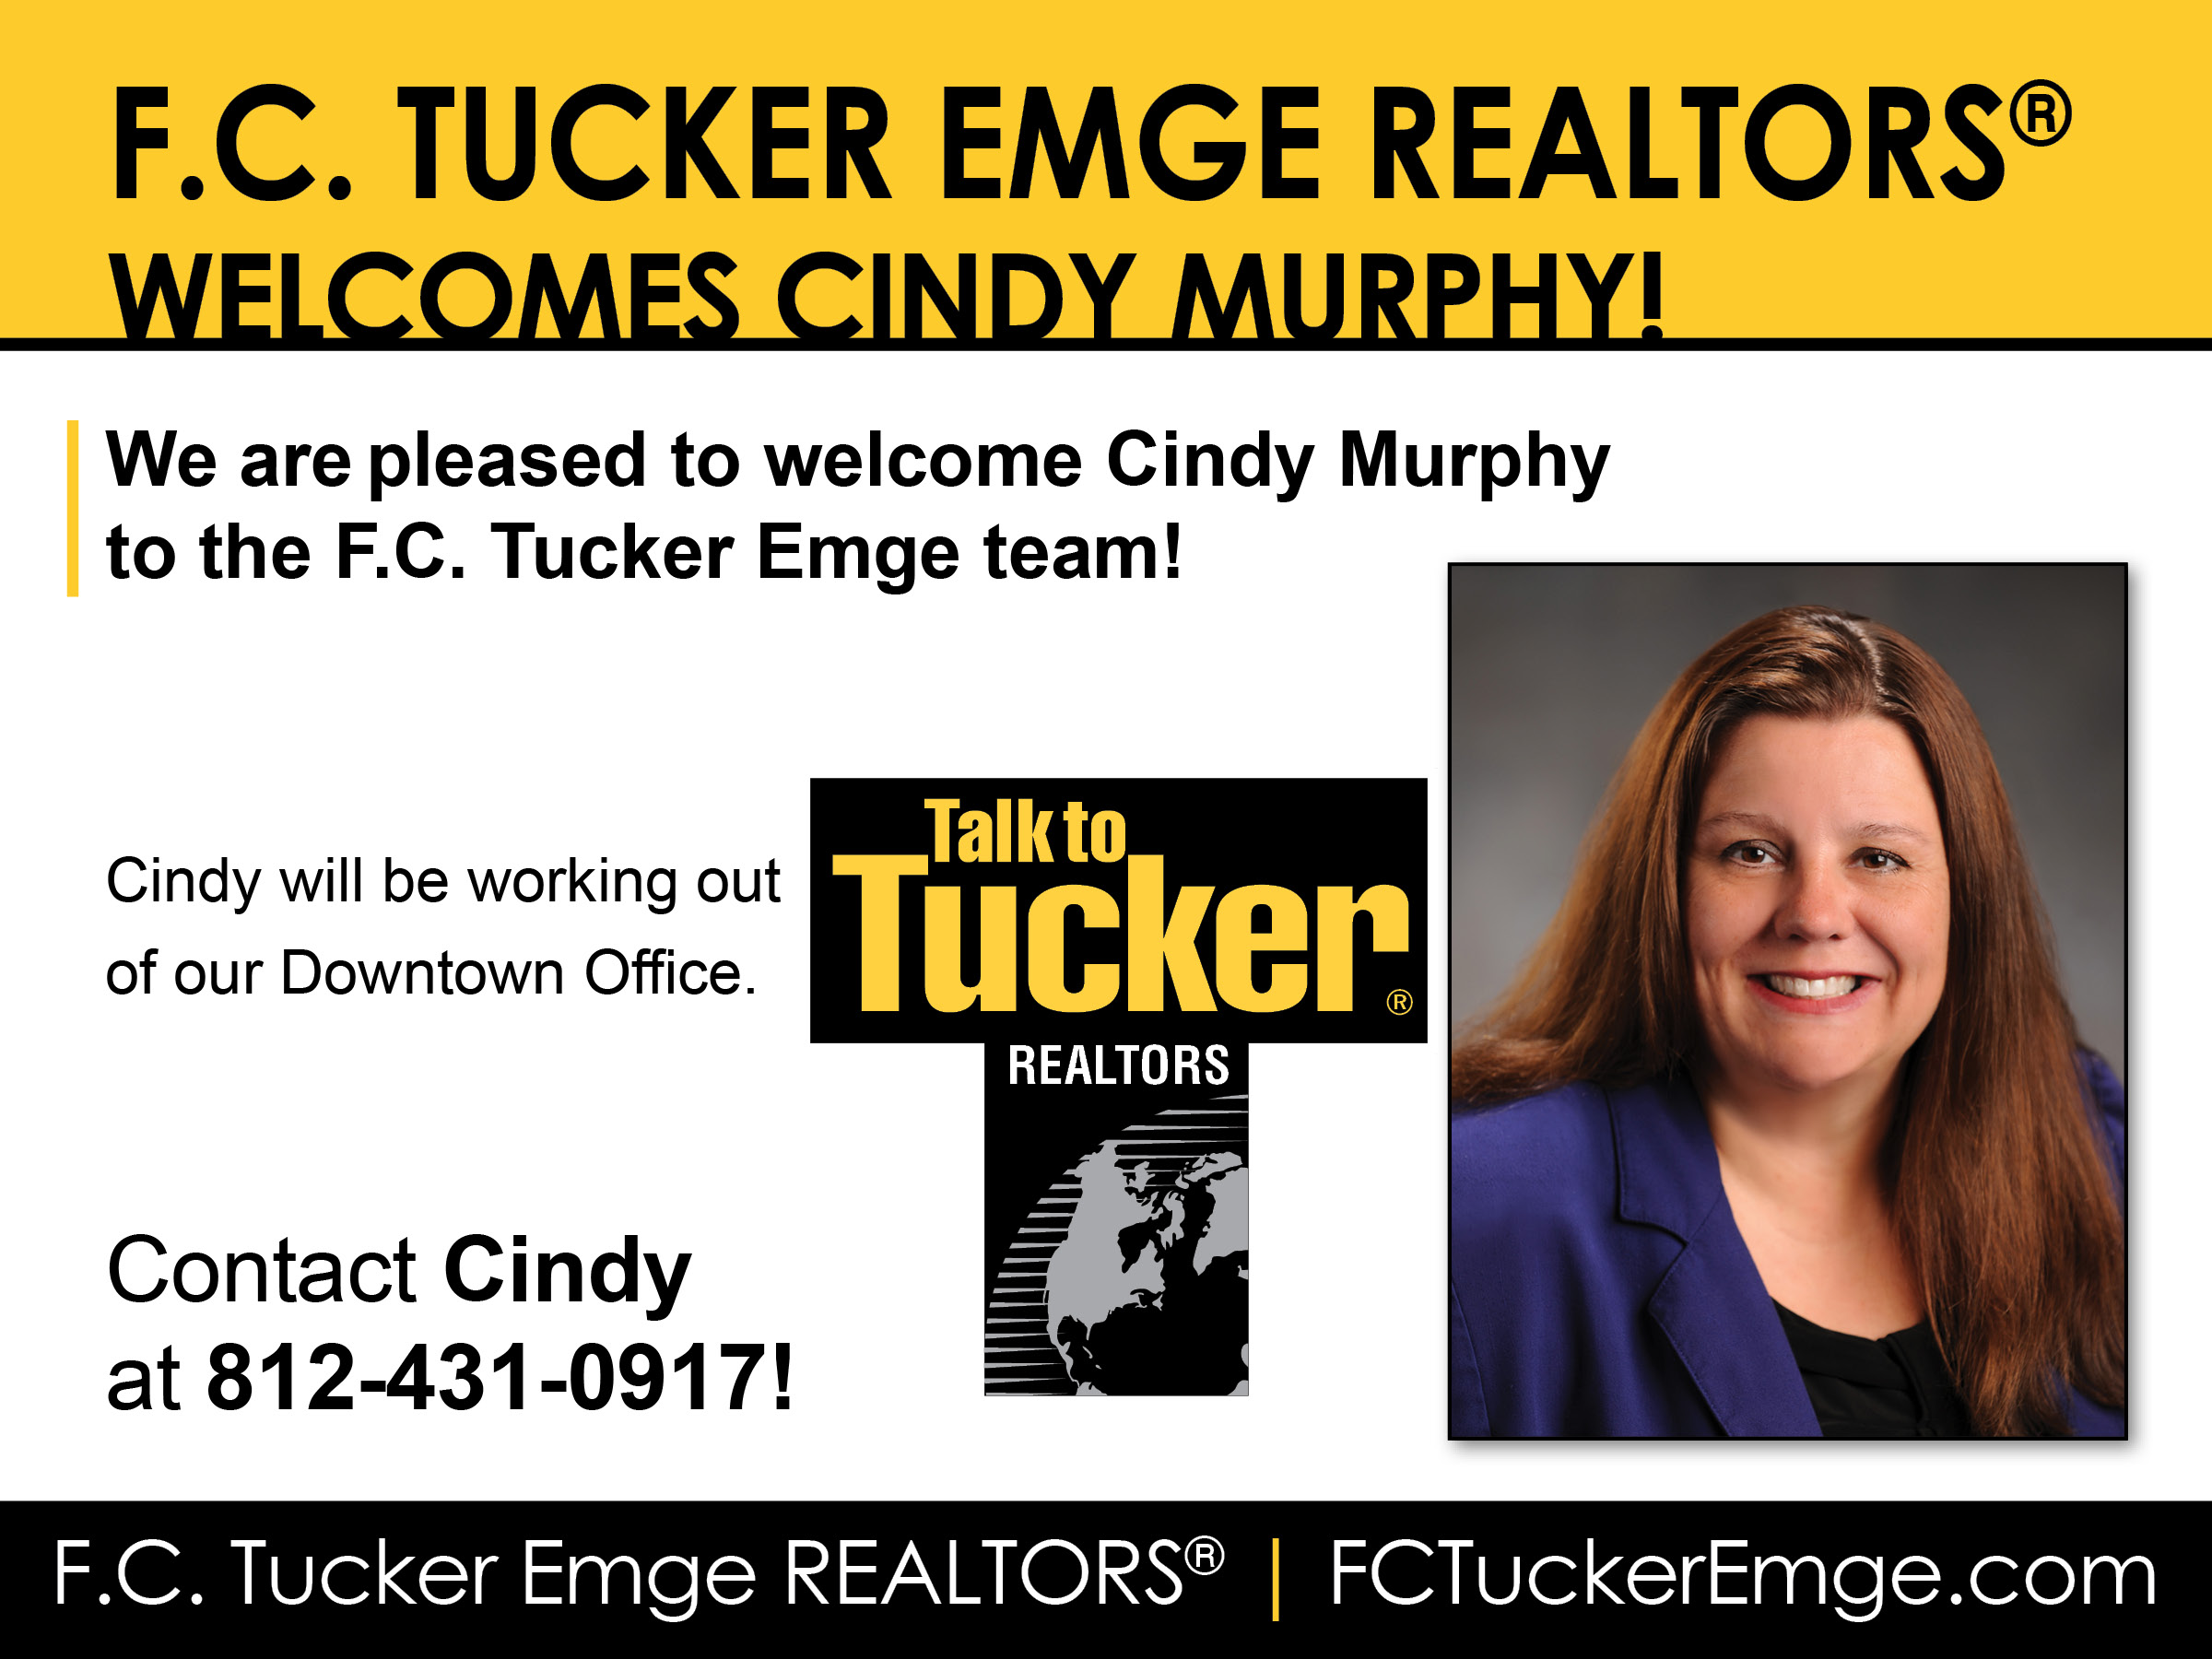 Welcome Cindy Murphy!